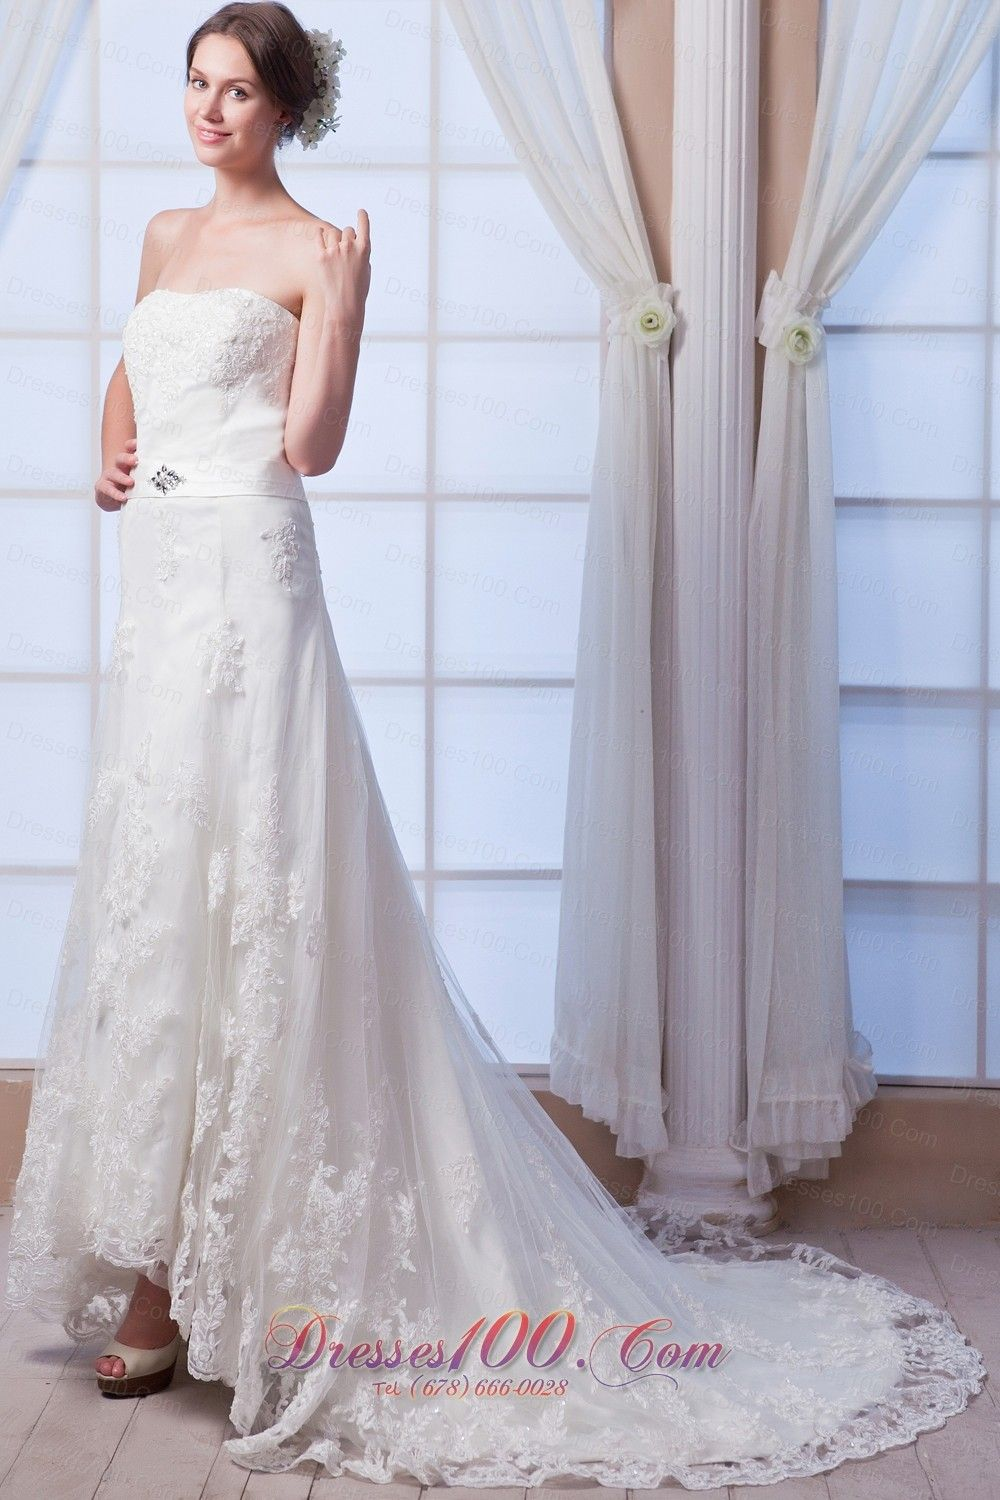 Beaded wedding dress in gmunden wedding gown bridal gown bridesmaid